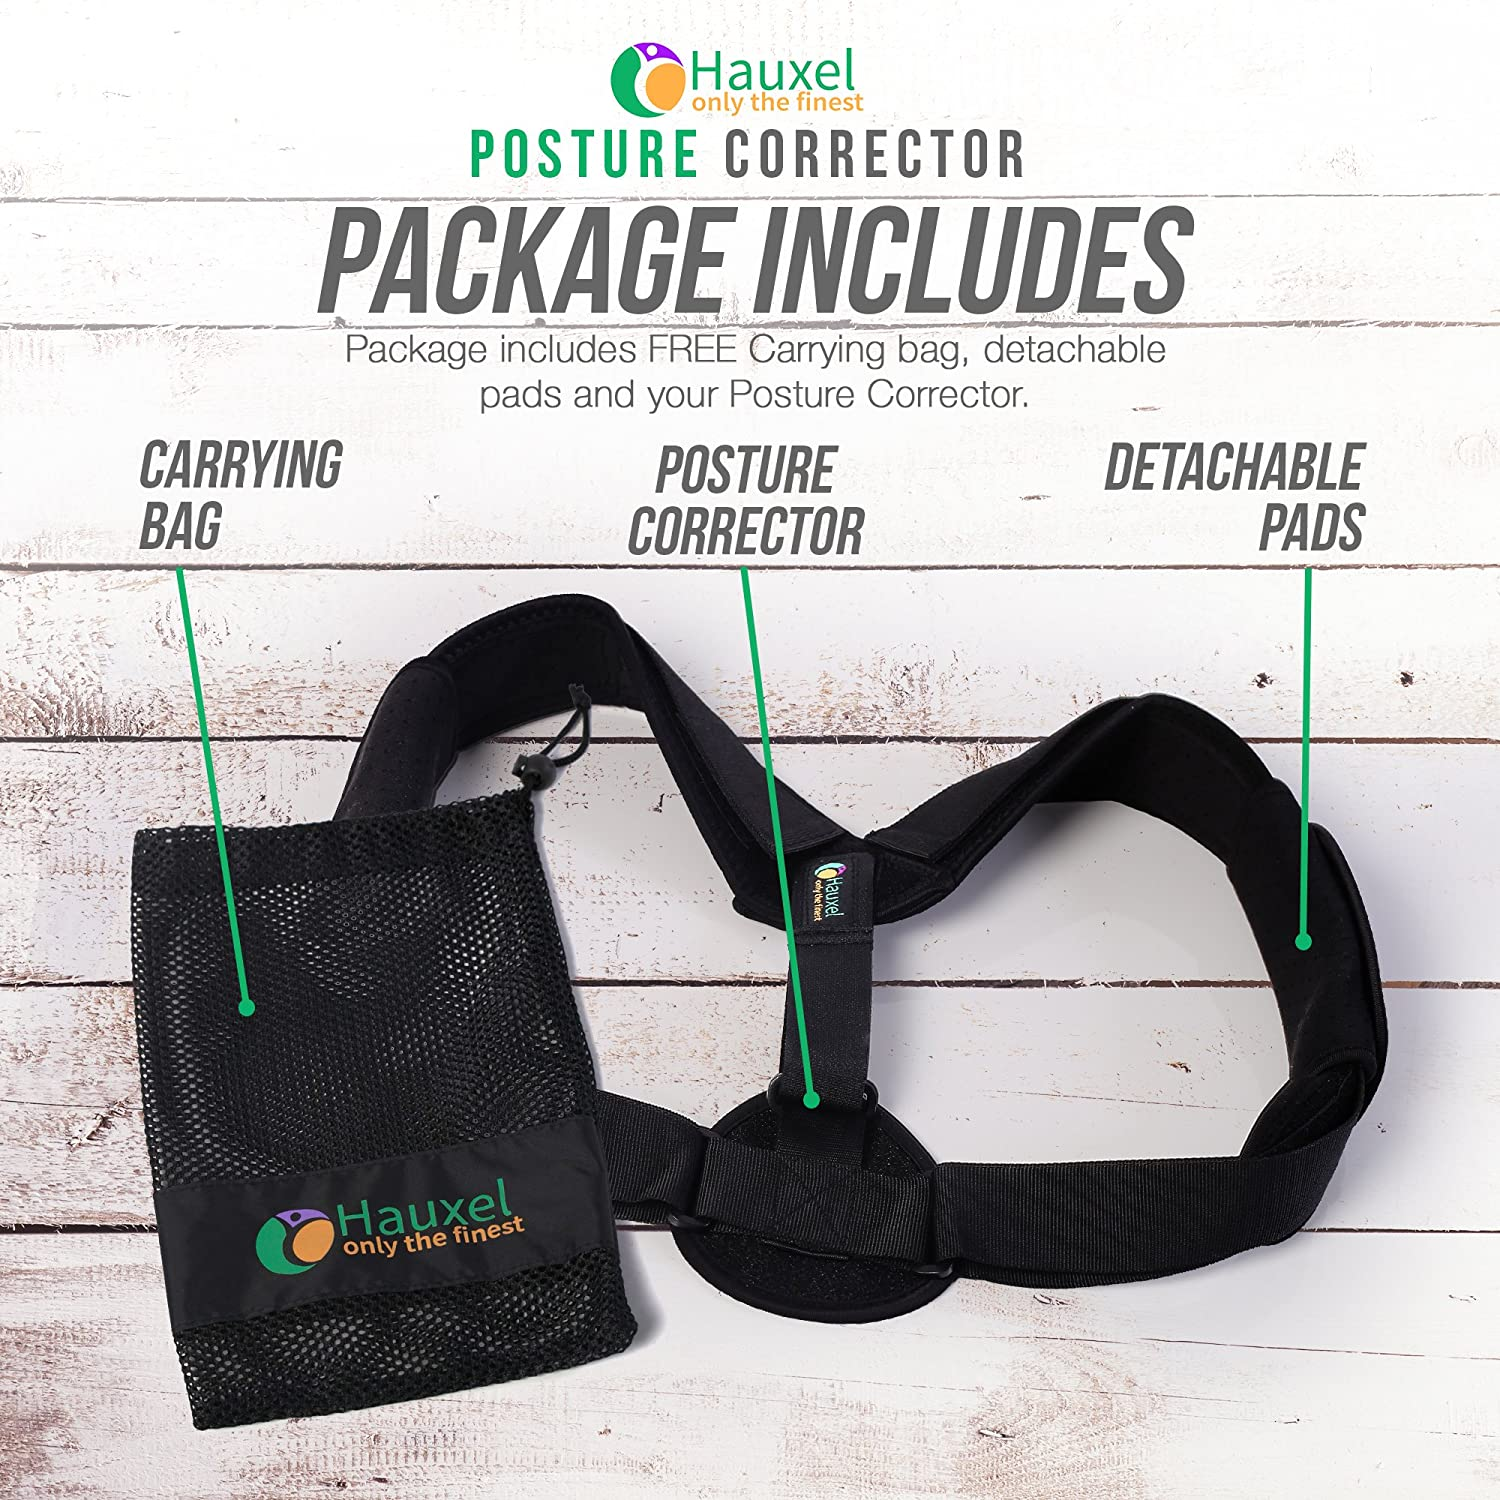 Amazon Posture Corrector for Women & Men fortable Adjustable Back Posture Brace & Clavicle Support Premium Quality Posture Support for Spine